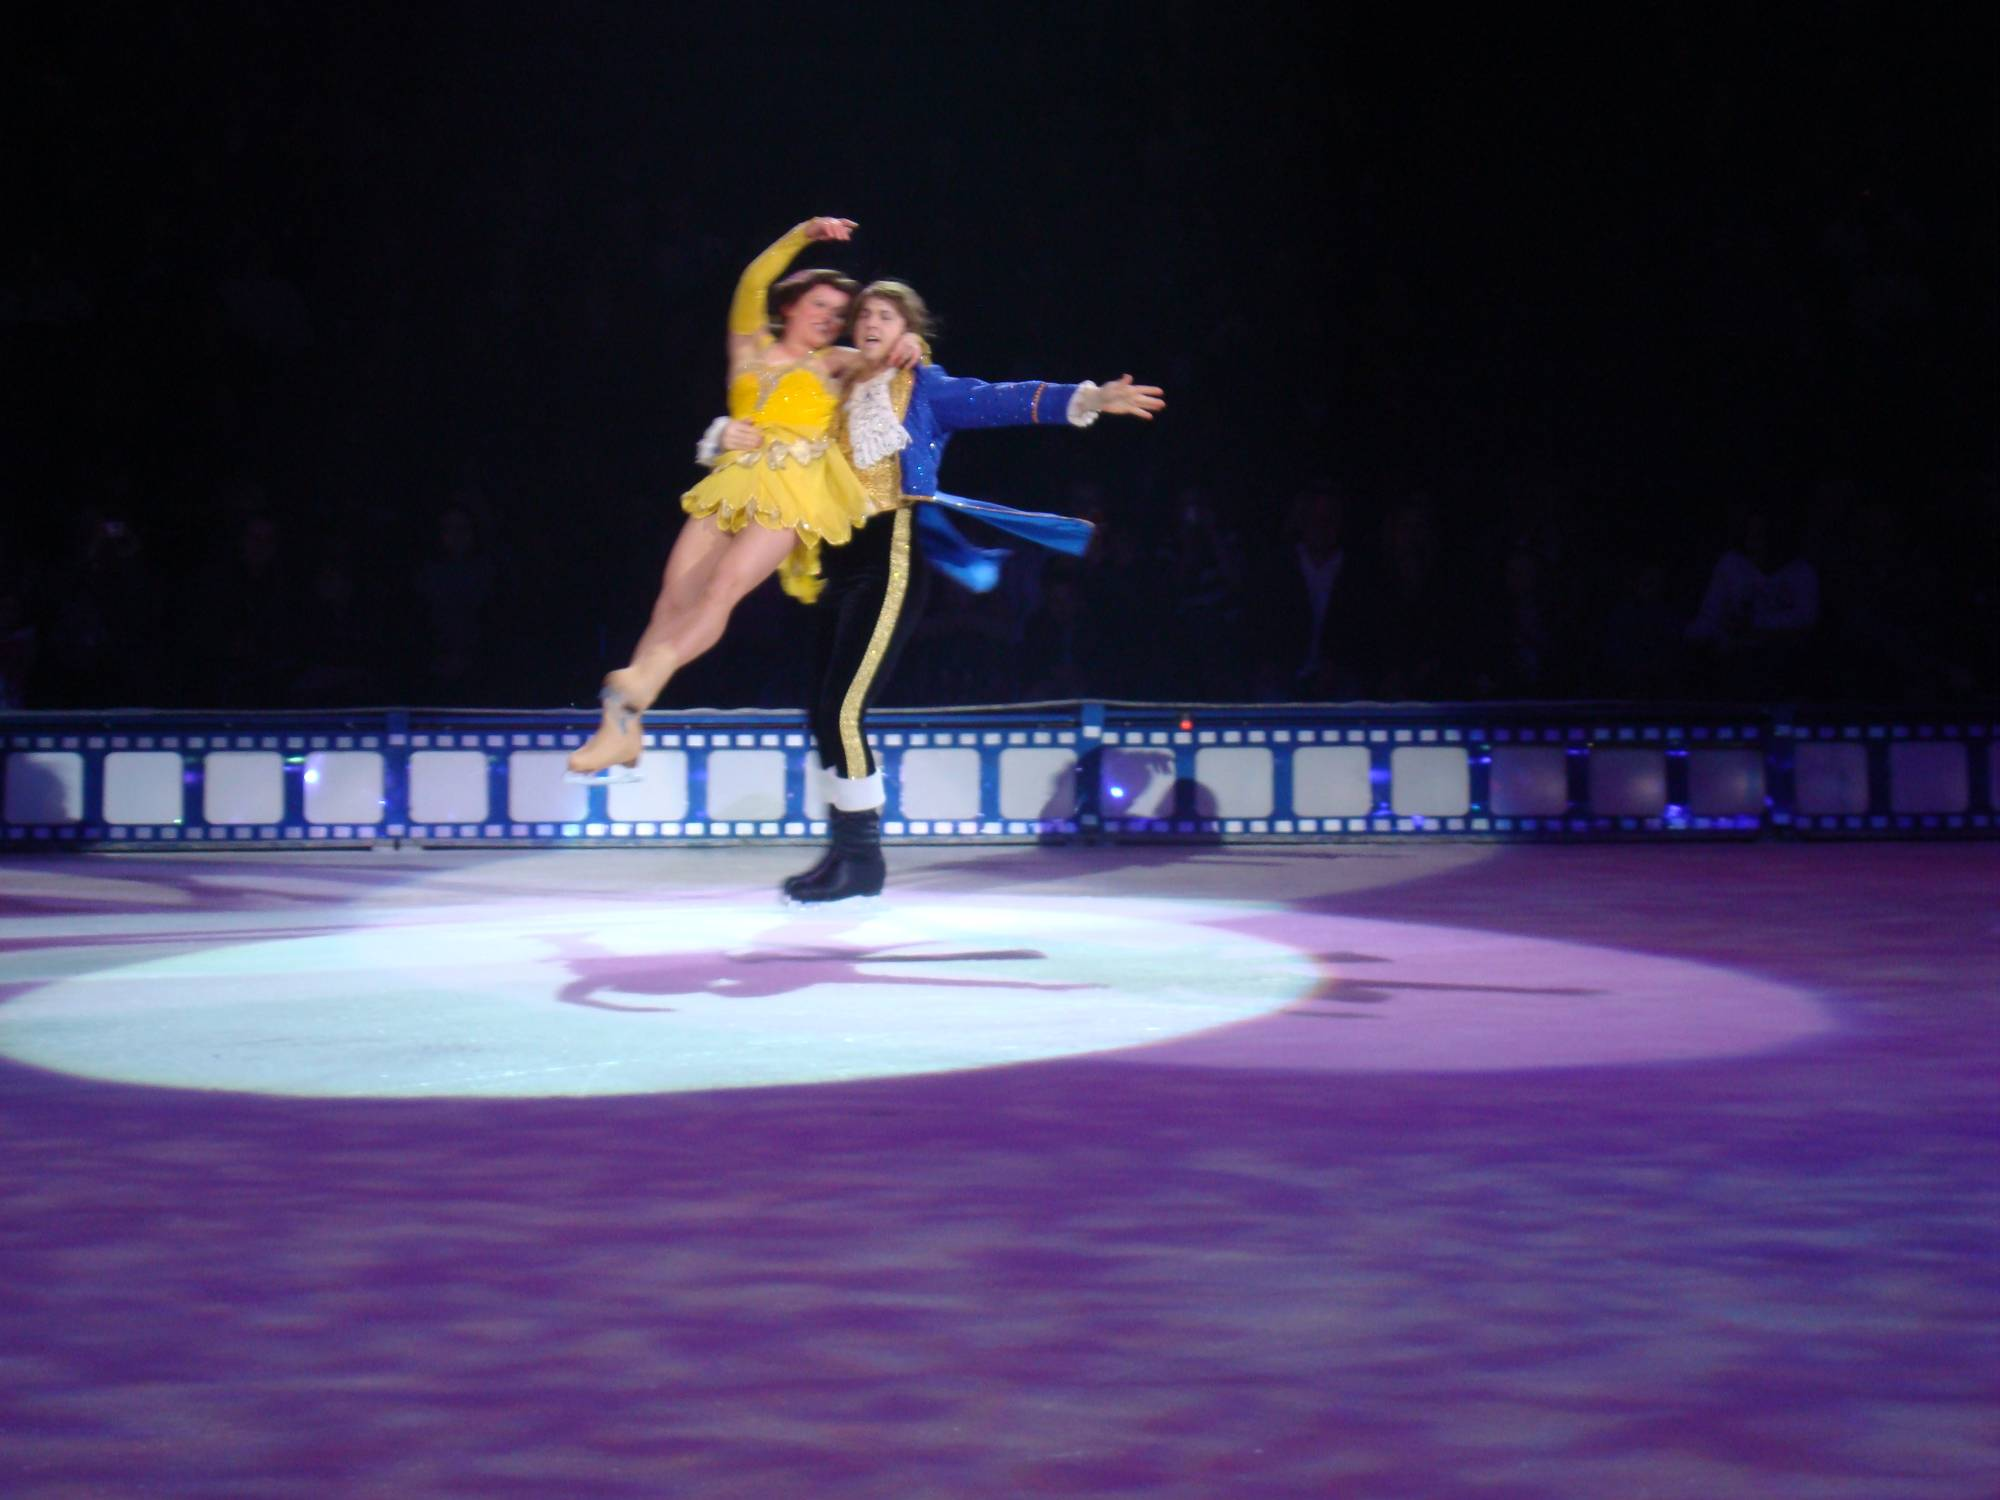 Get your Disney fix by seeing Disney On Ice |PassPorter.com